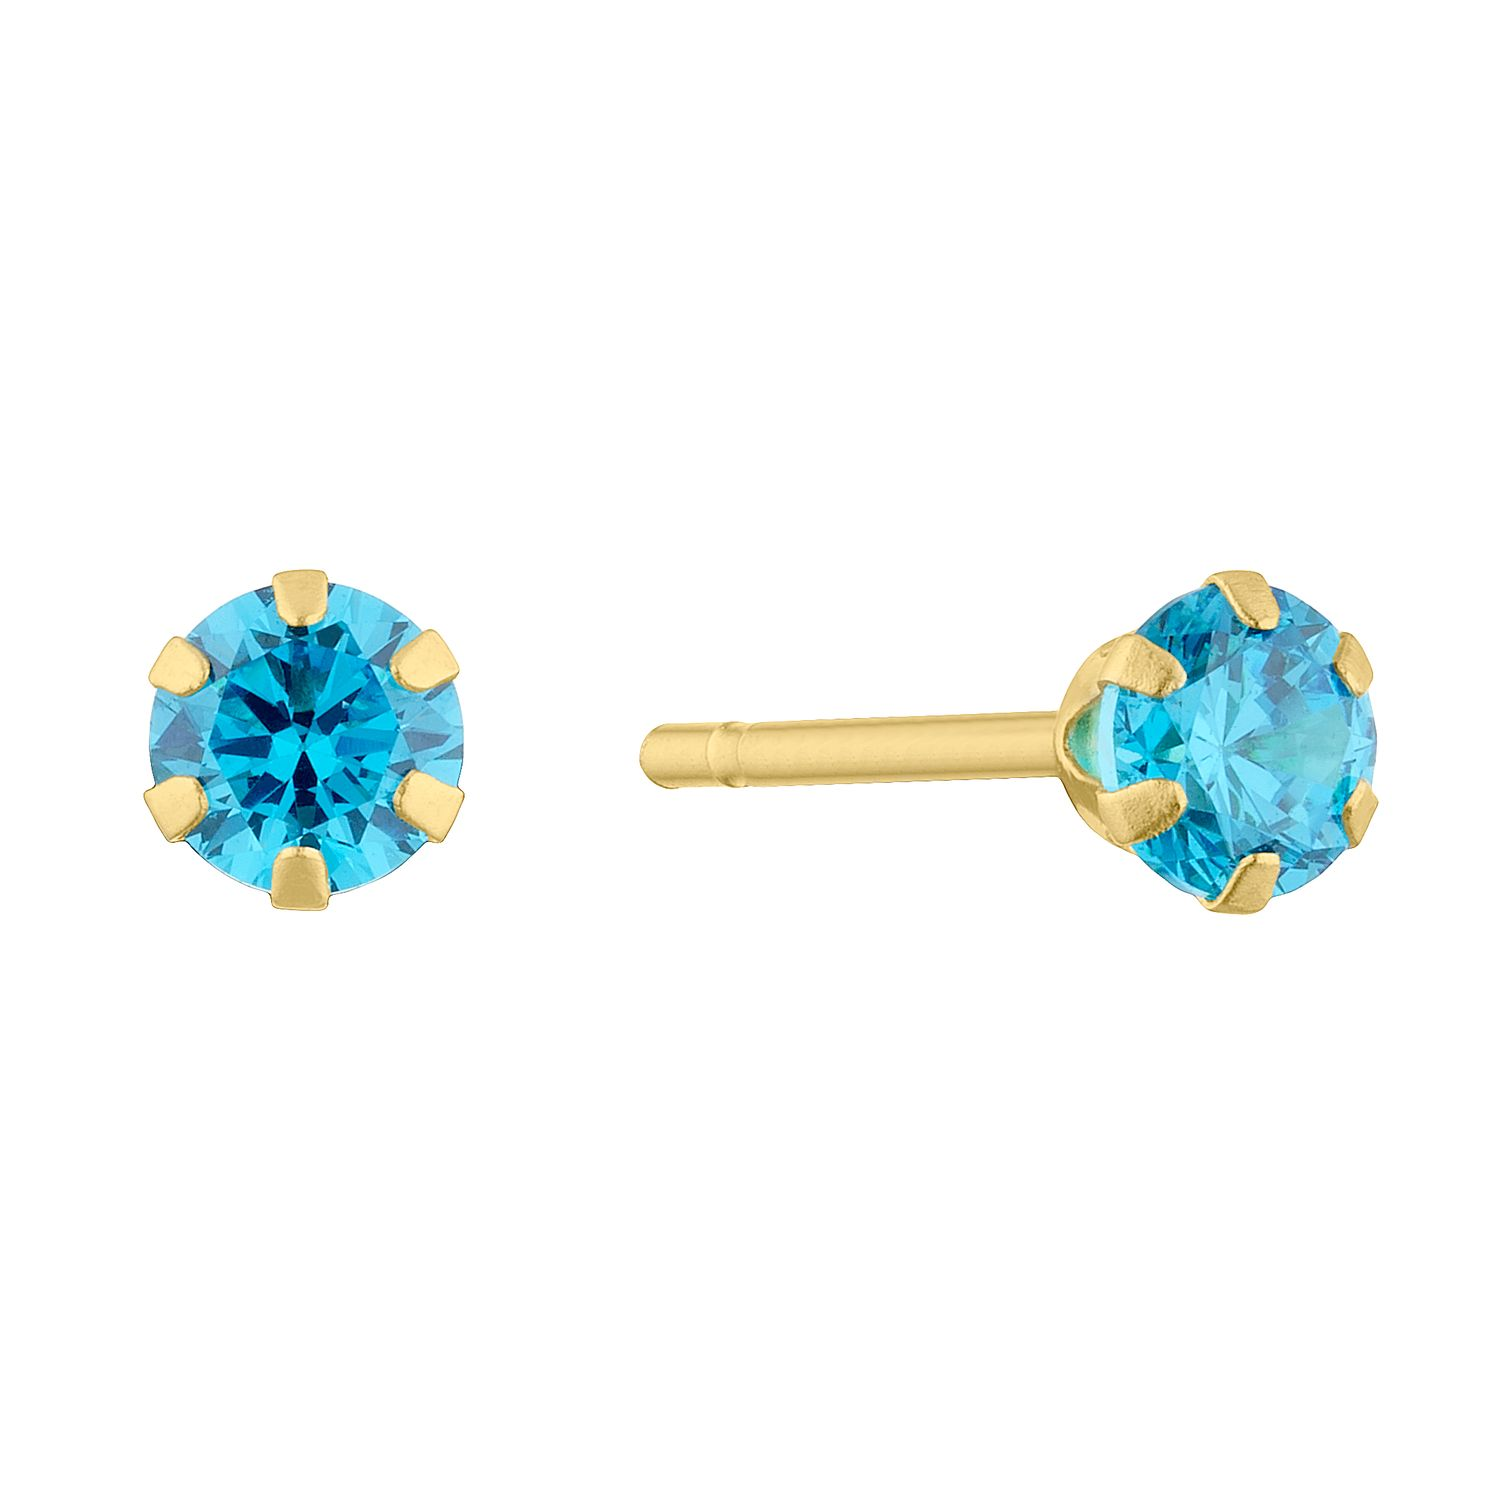 Children's 9ct Yellow Gold Blue Cubic Zirconia Stud Earrings - Product number 5123615